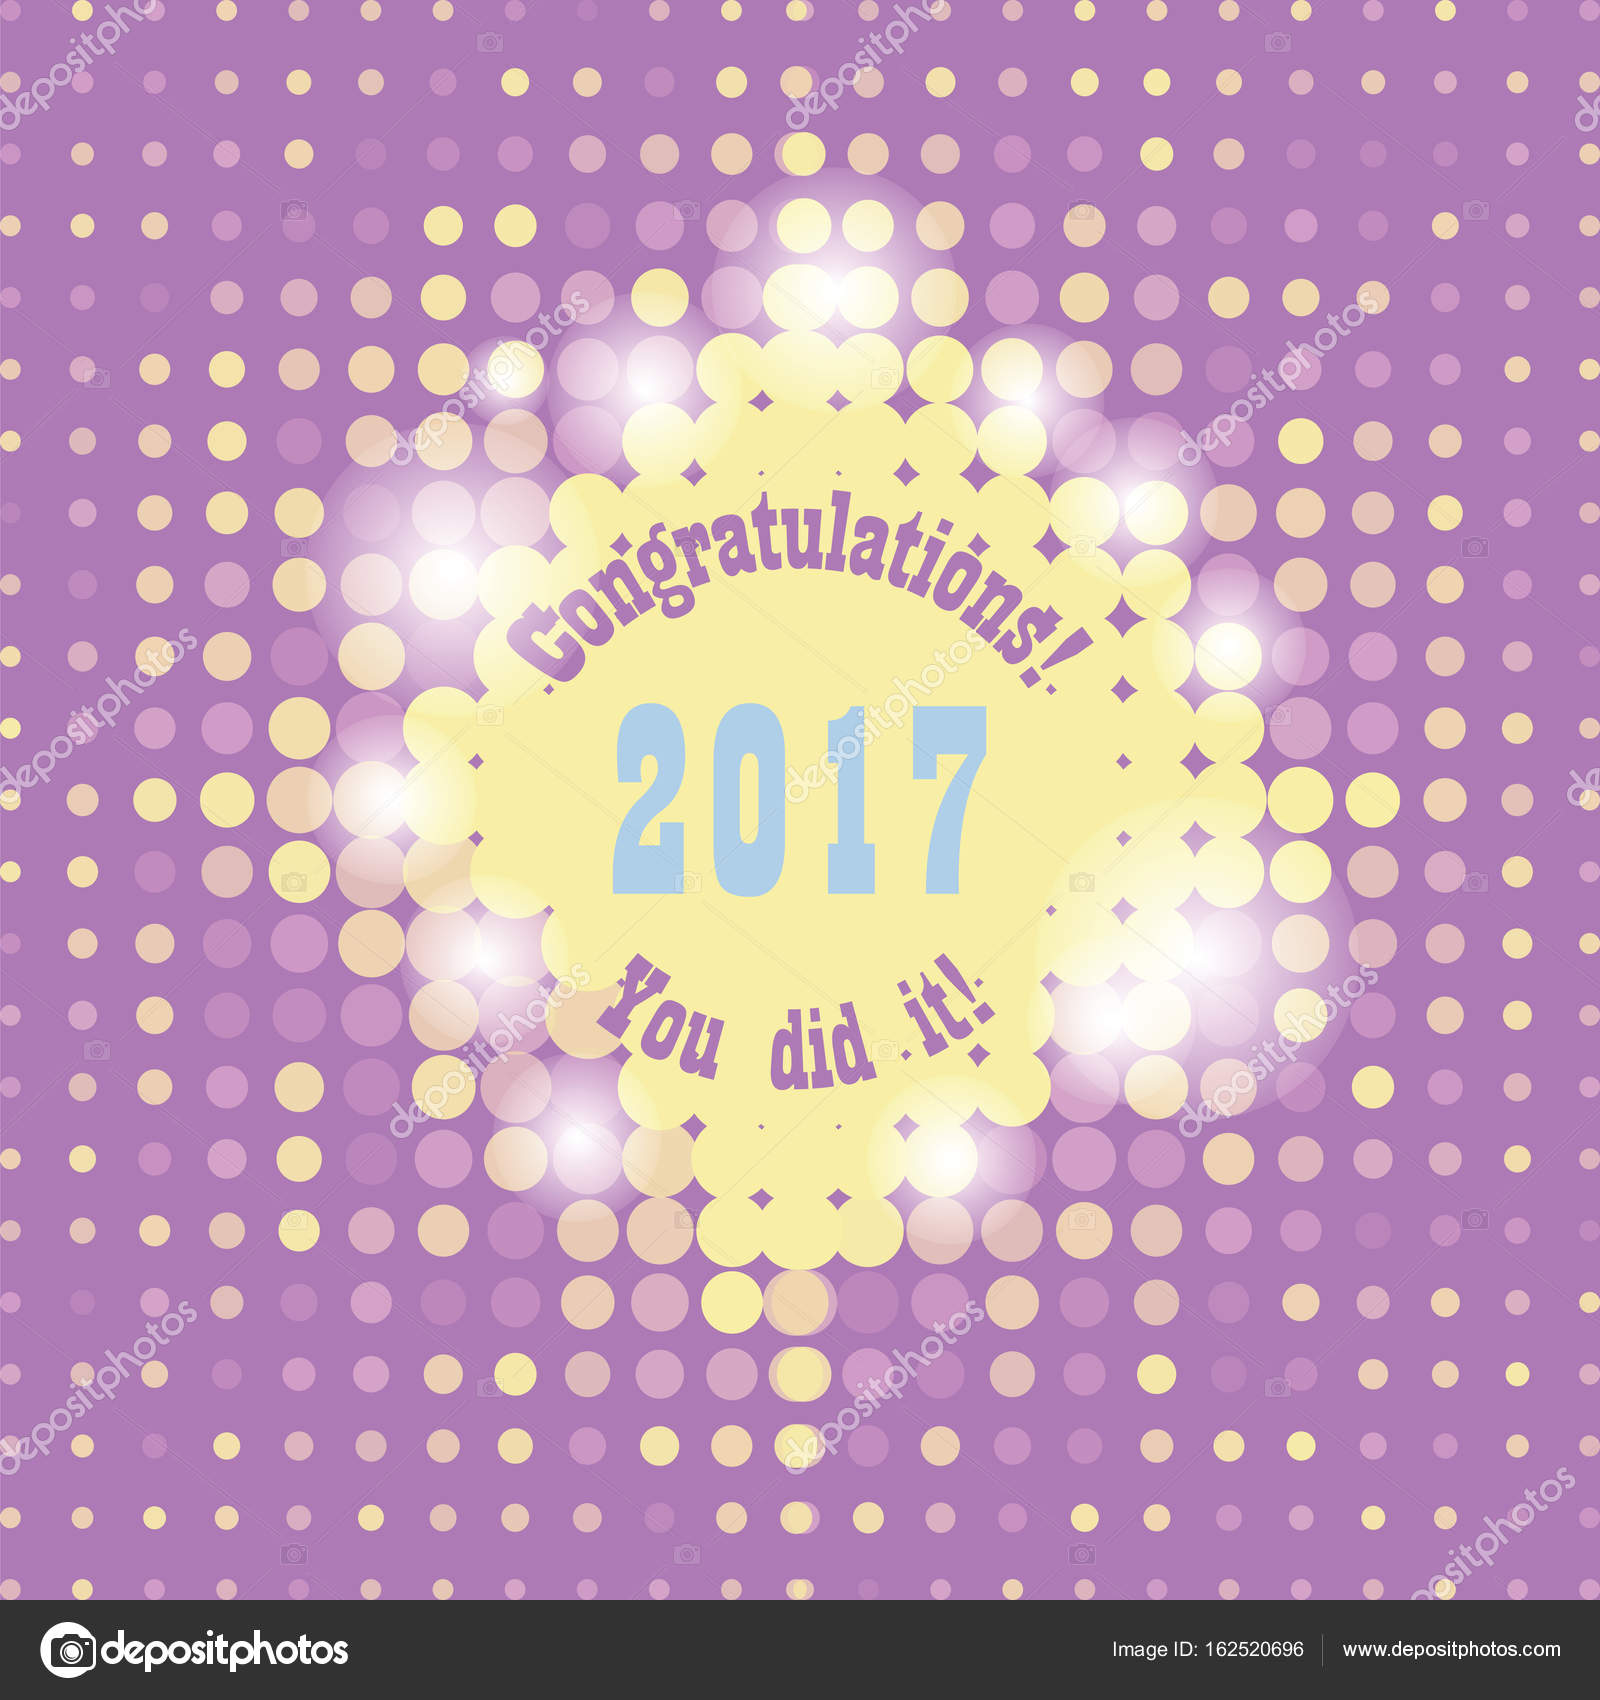 greeting card with congratulations graduate completion stock